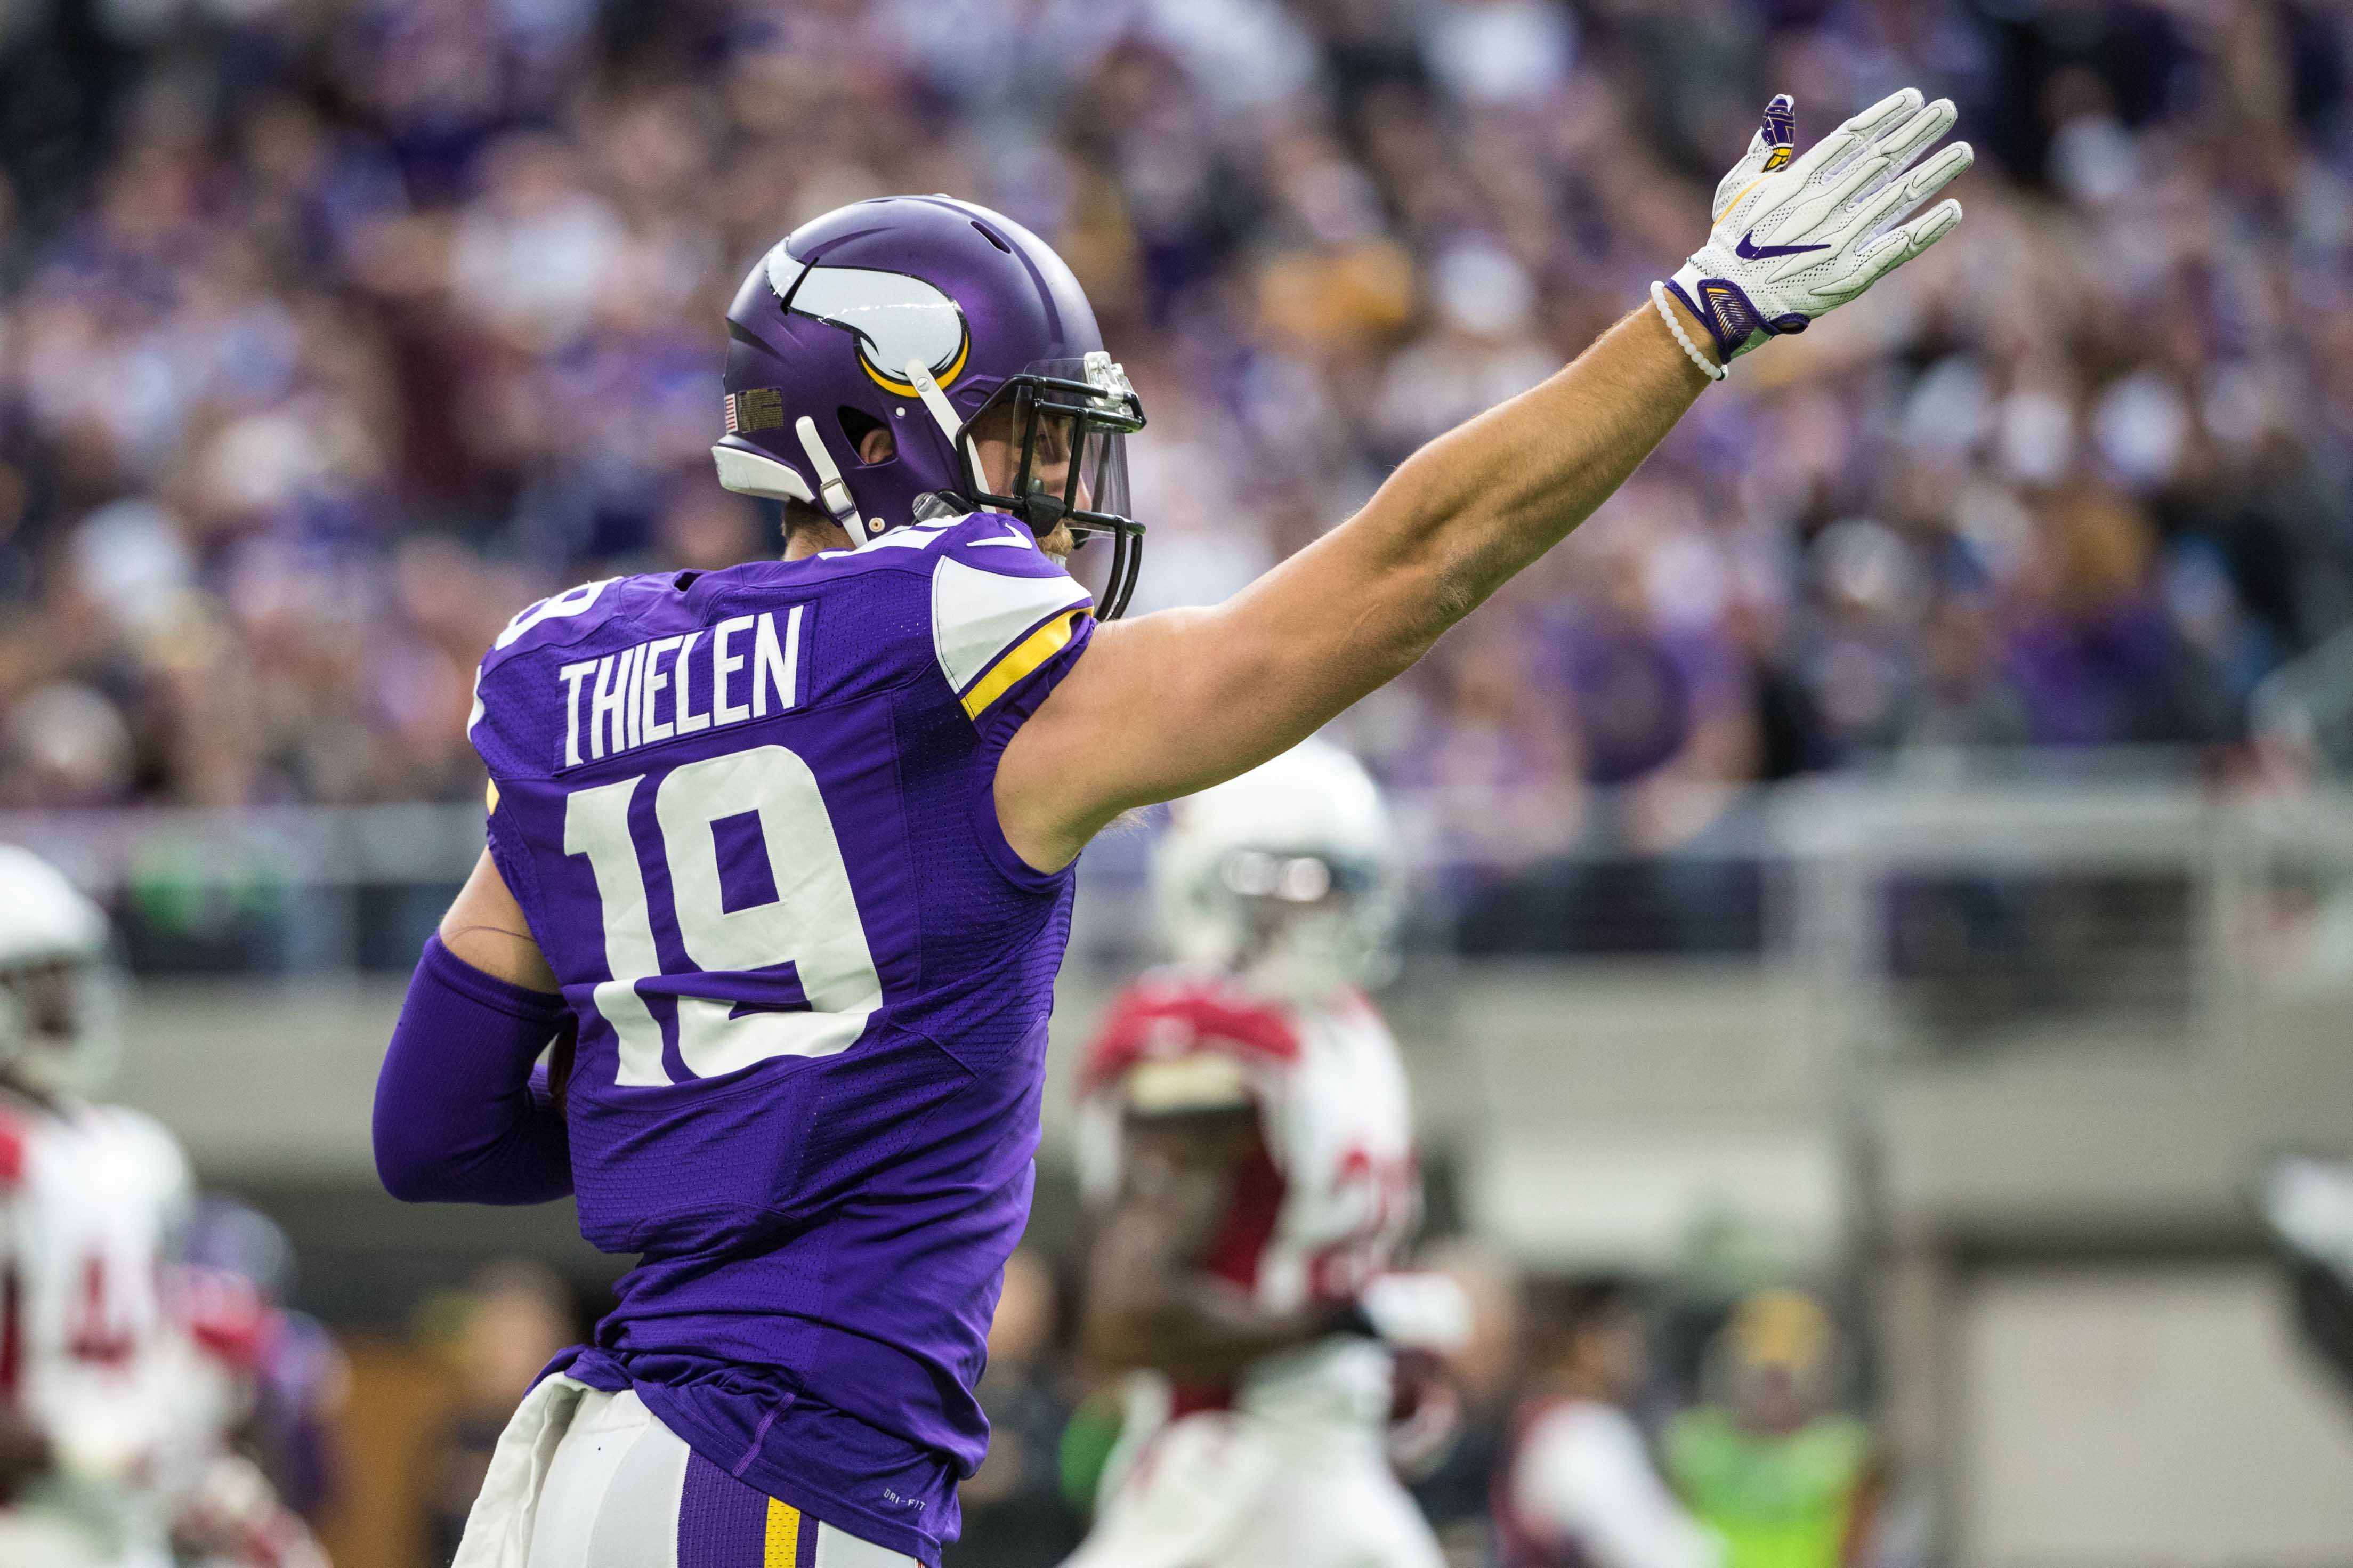 an analysis of the vikings The vikings and bears often play close at soldier field, with four of the last seven meetings decided by one score w9: nov 6 vs detroit lions, 12 pm ak: coming off a short week, the vikings face the detroit lions for the first time in week 9.